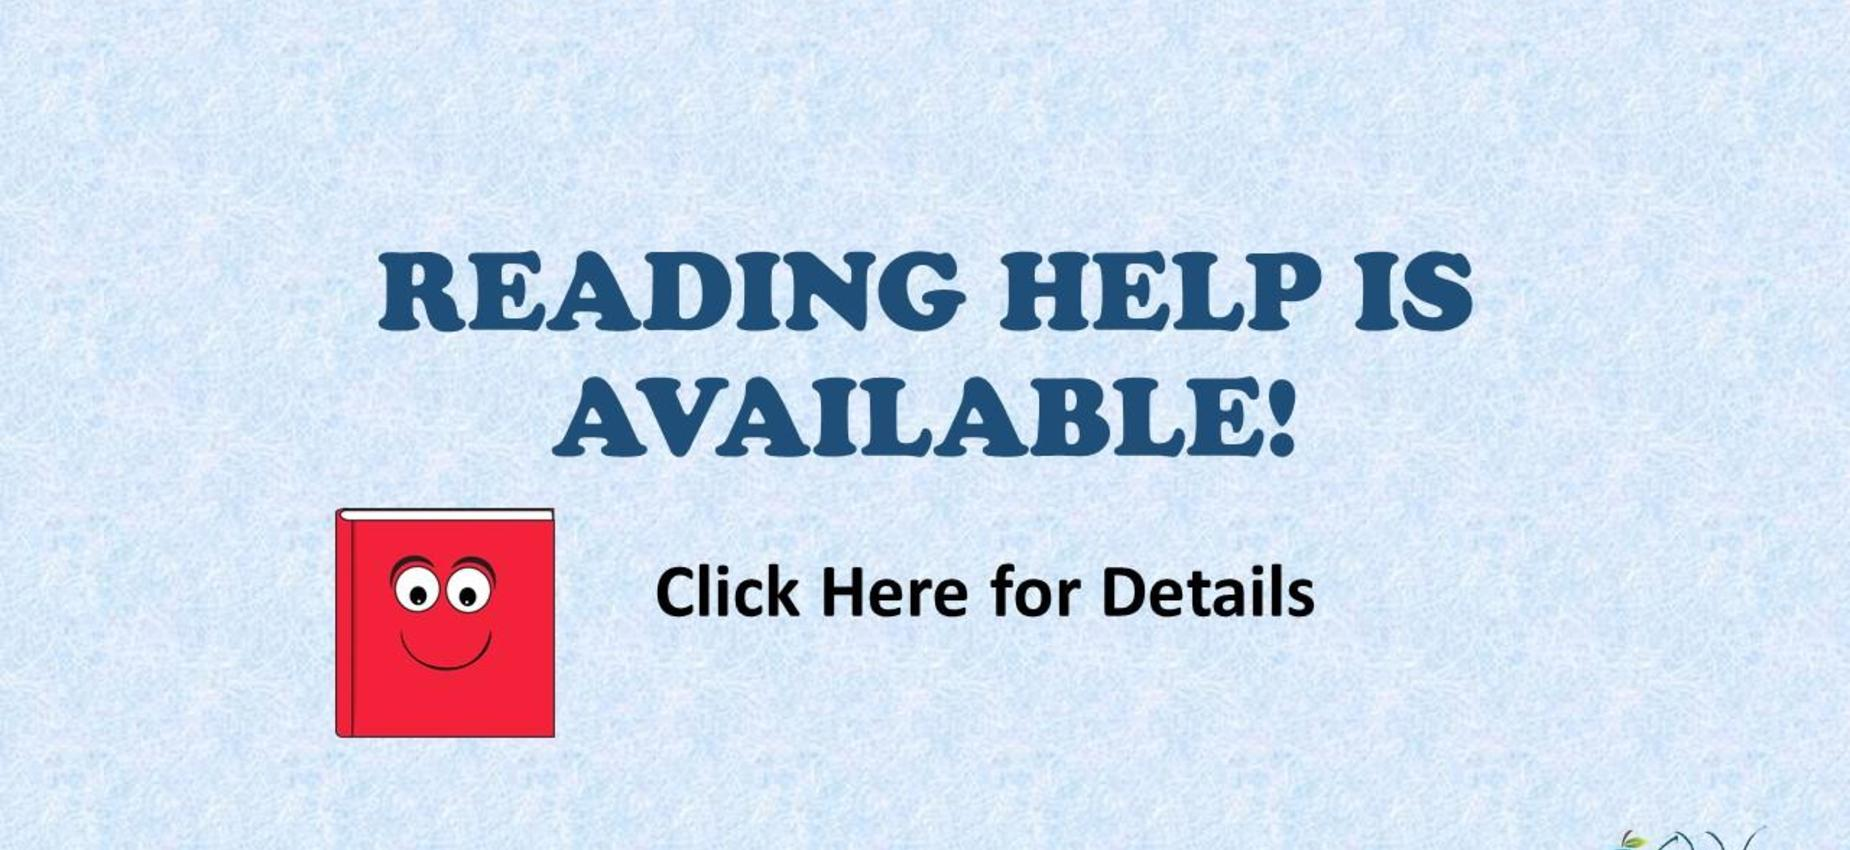 Reading Help is Available Graphic